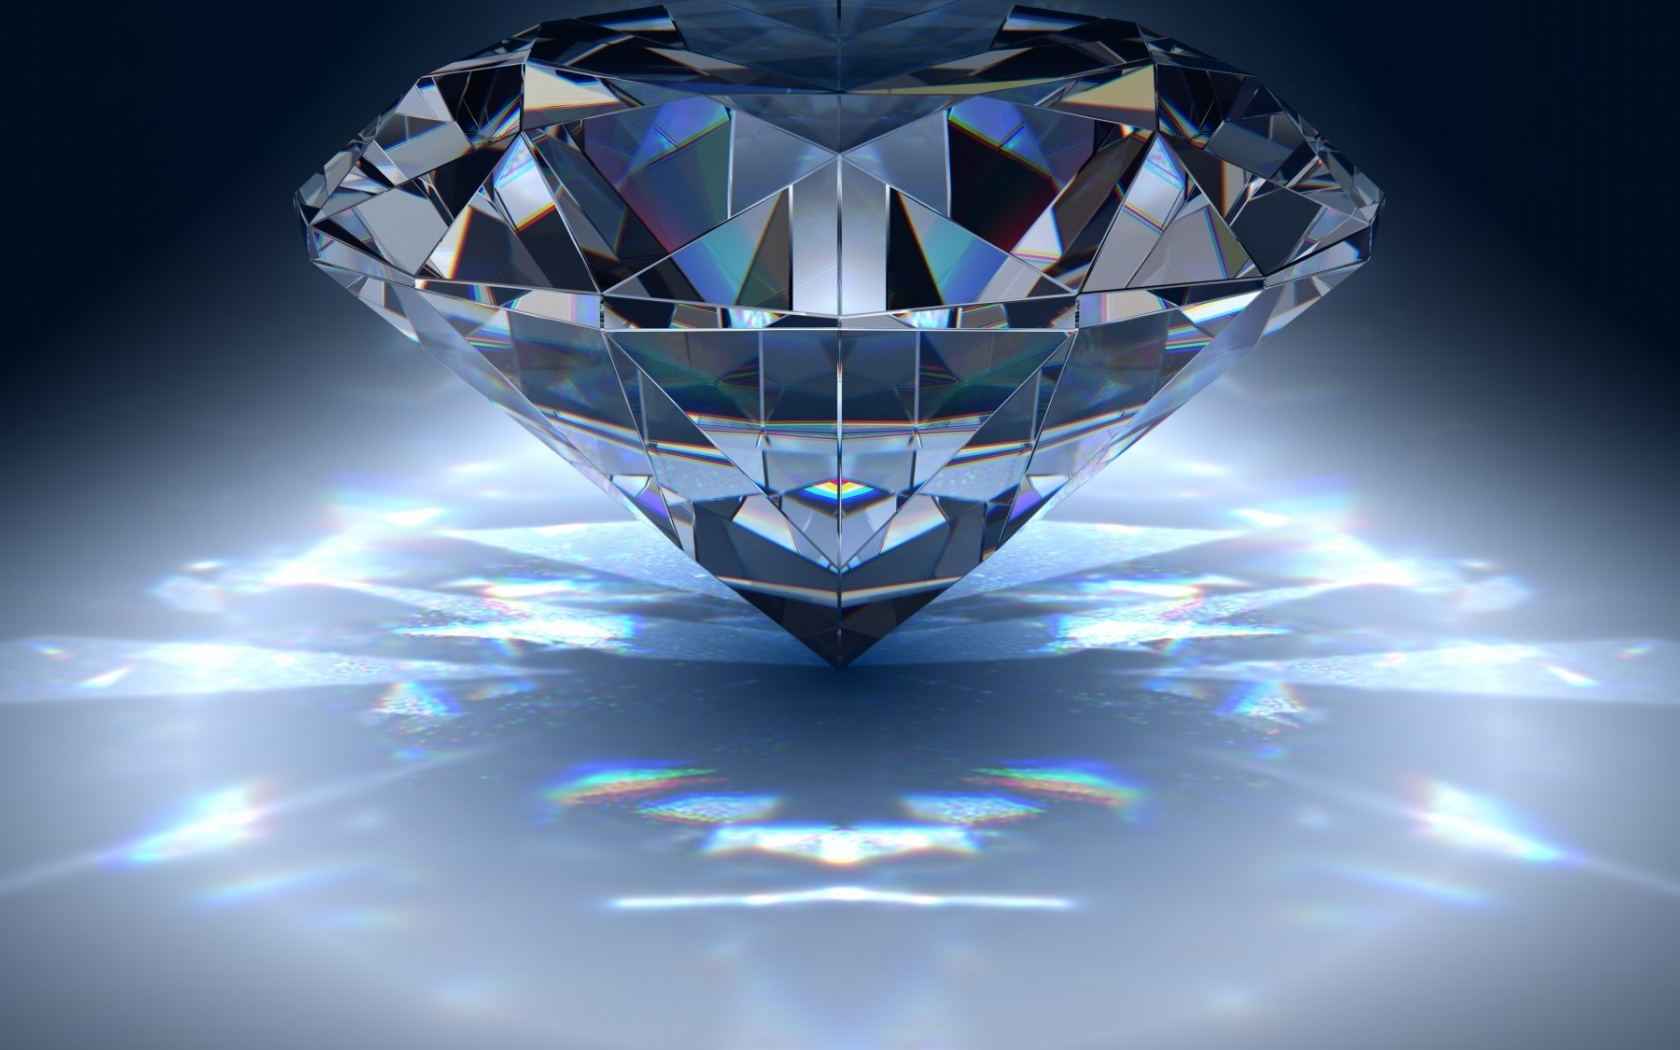 The Crowning Jewel in the Eye of Love